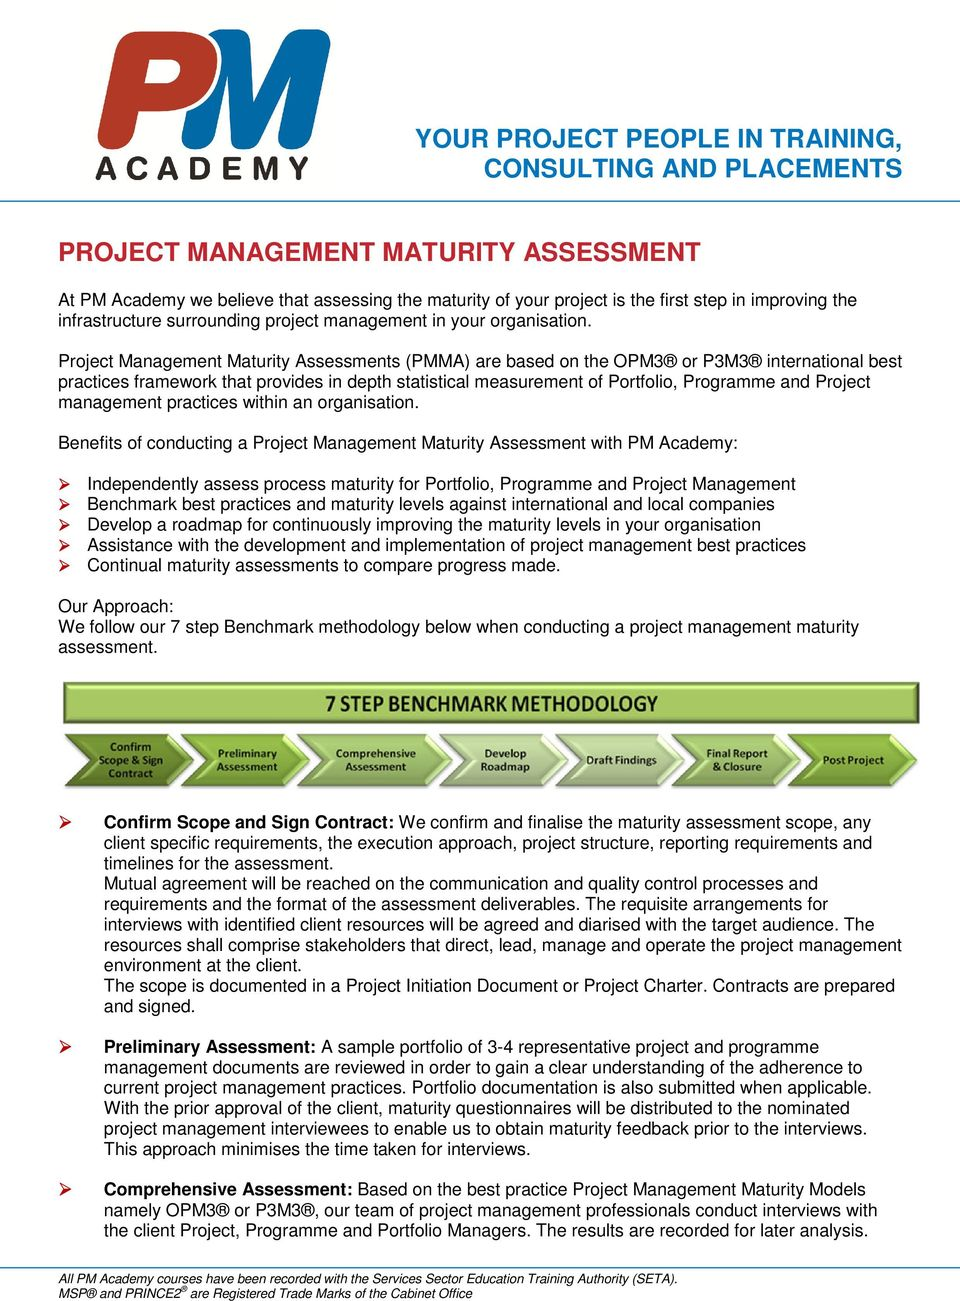 Project Management Maturity Assessments (PMMA) are based on the OPM3 or P3M3 international best practices framework that provides in depth statistical measurement of Portfolio, Programme and Project